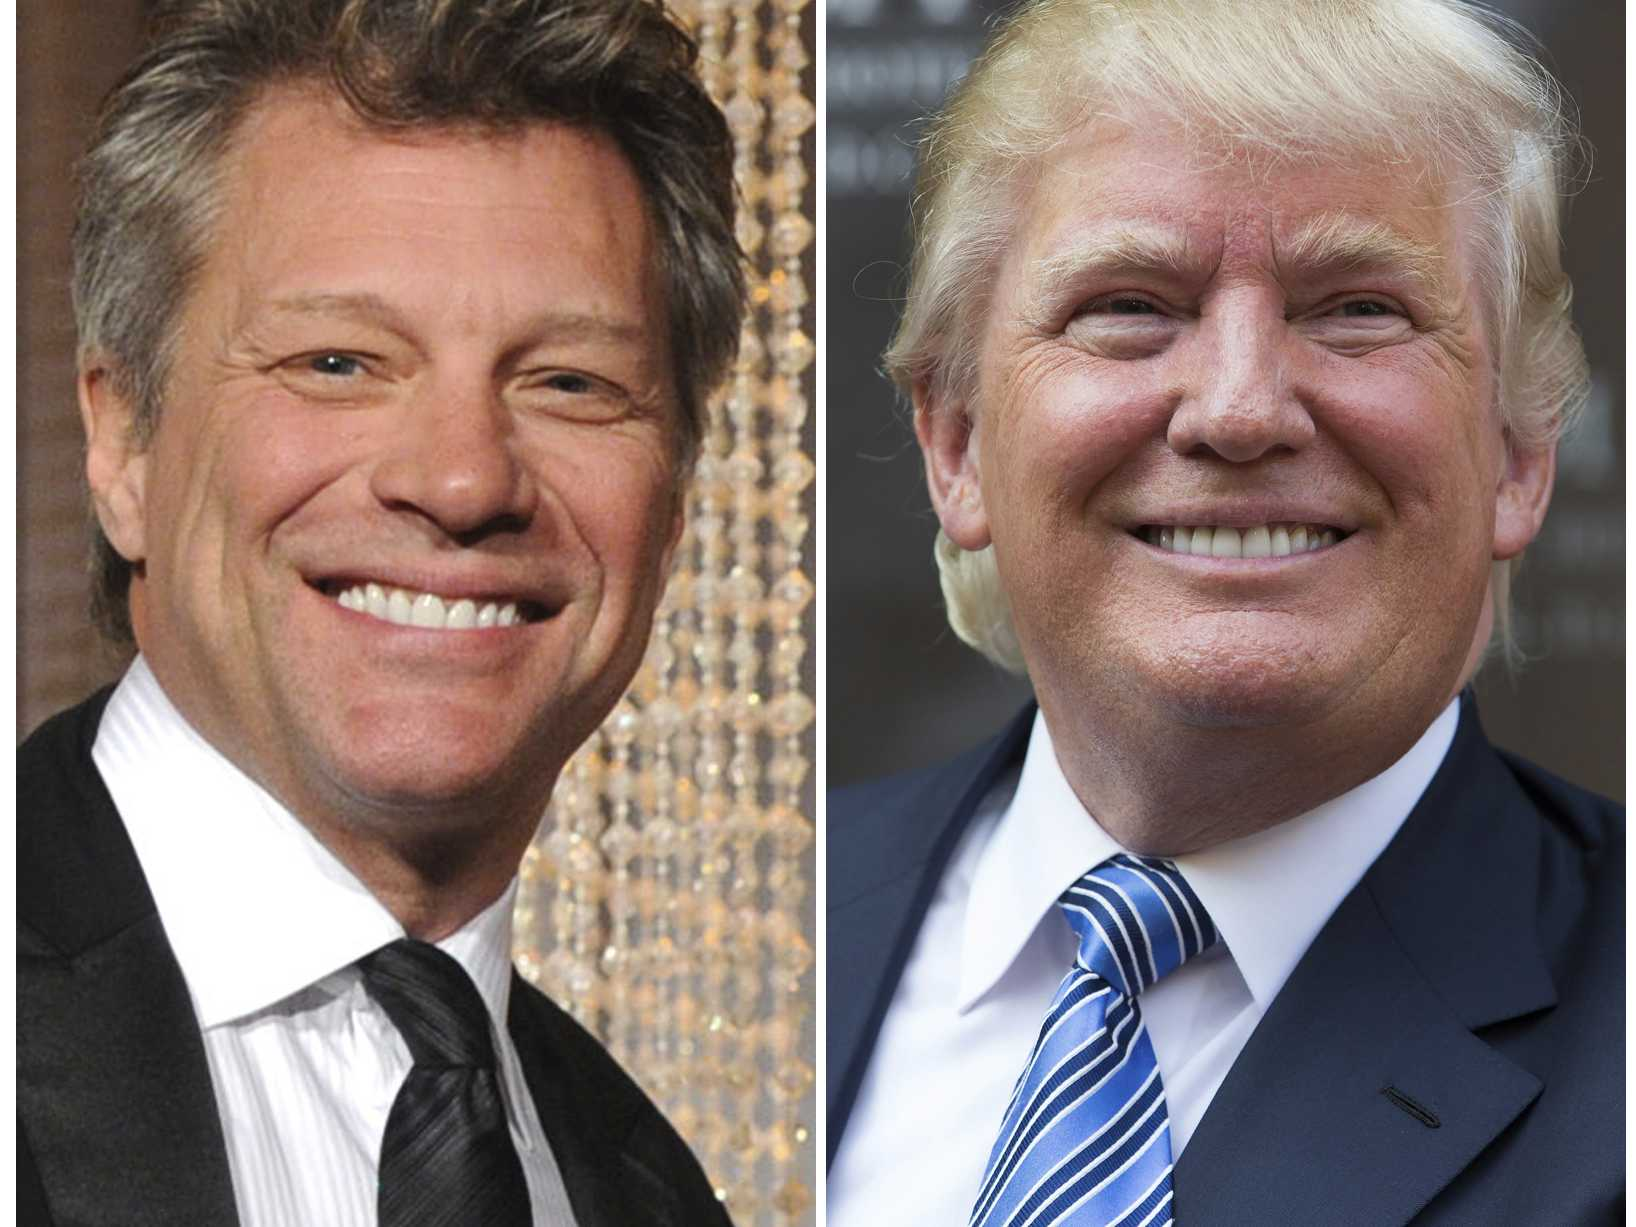 Was Trump Behind 2014 Effort to Foil Bon Jovi's NFL Bid?